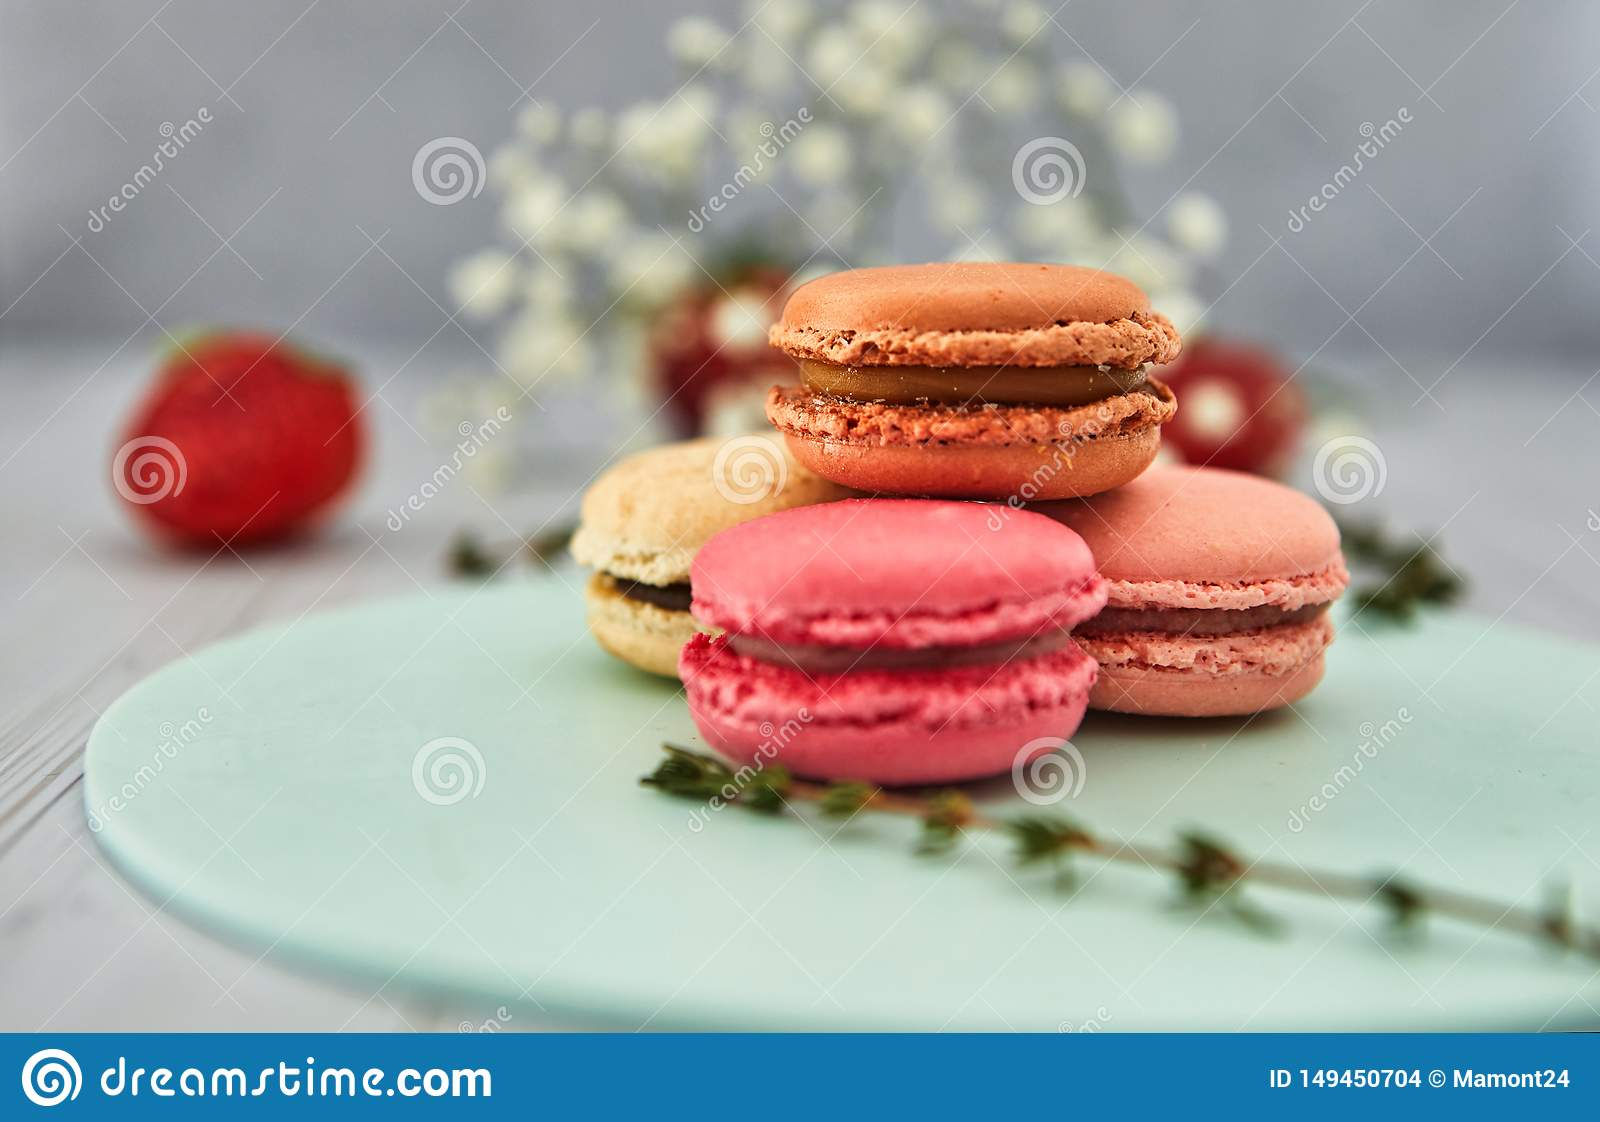 French colorful macaroons. Colorful pastel macaroons on a light background with fresh strawberries